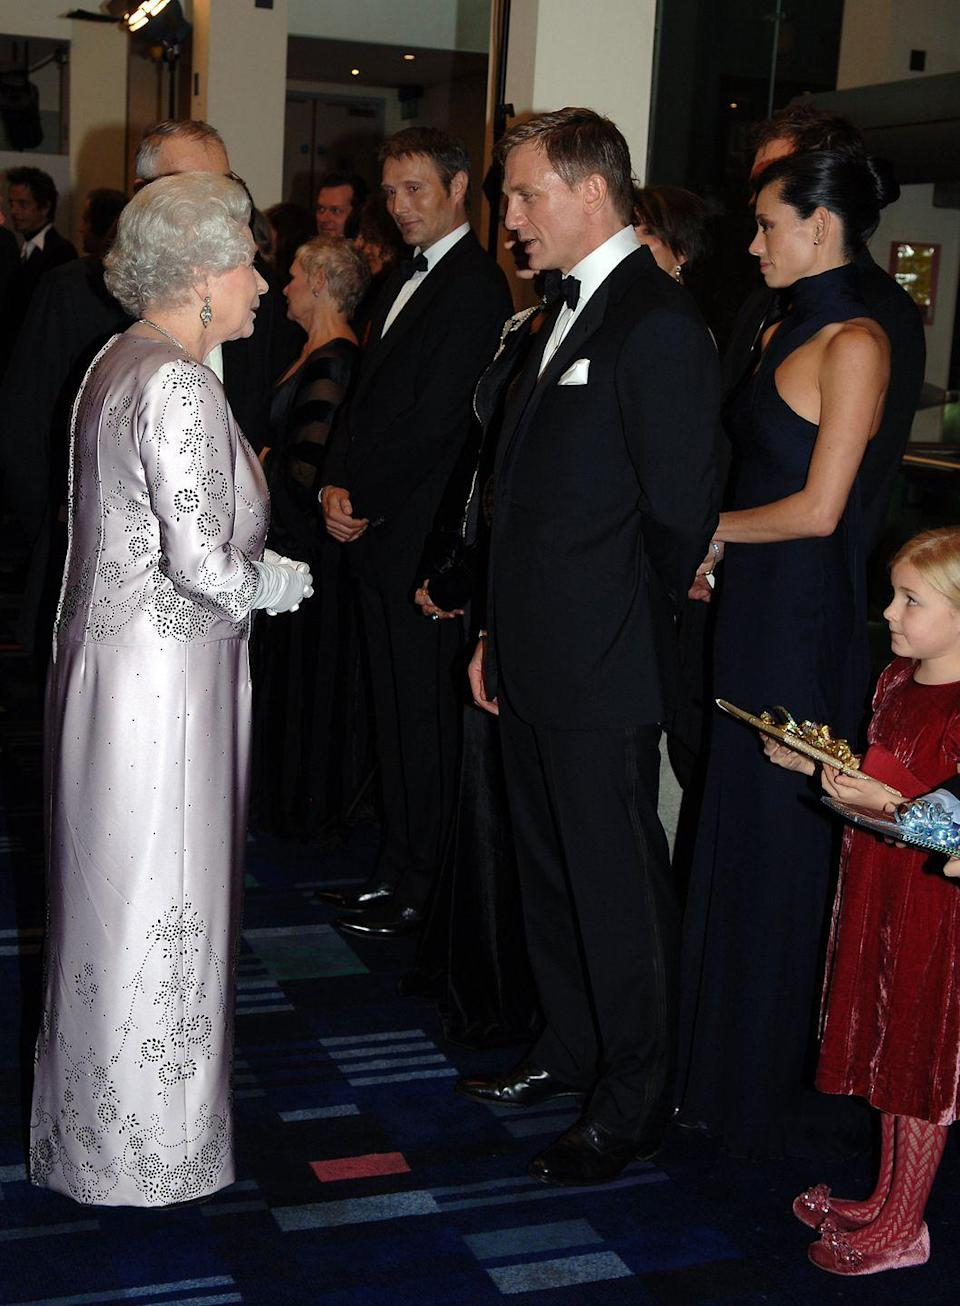 <p>We wonder if Queen Elizabeth is as charmed by Daniel Craig in a sharp tuxedo as we are? Judging by the look of their interaction here, we'd say yes.</p>